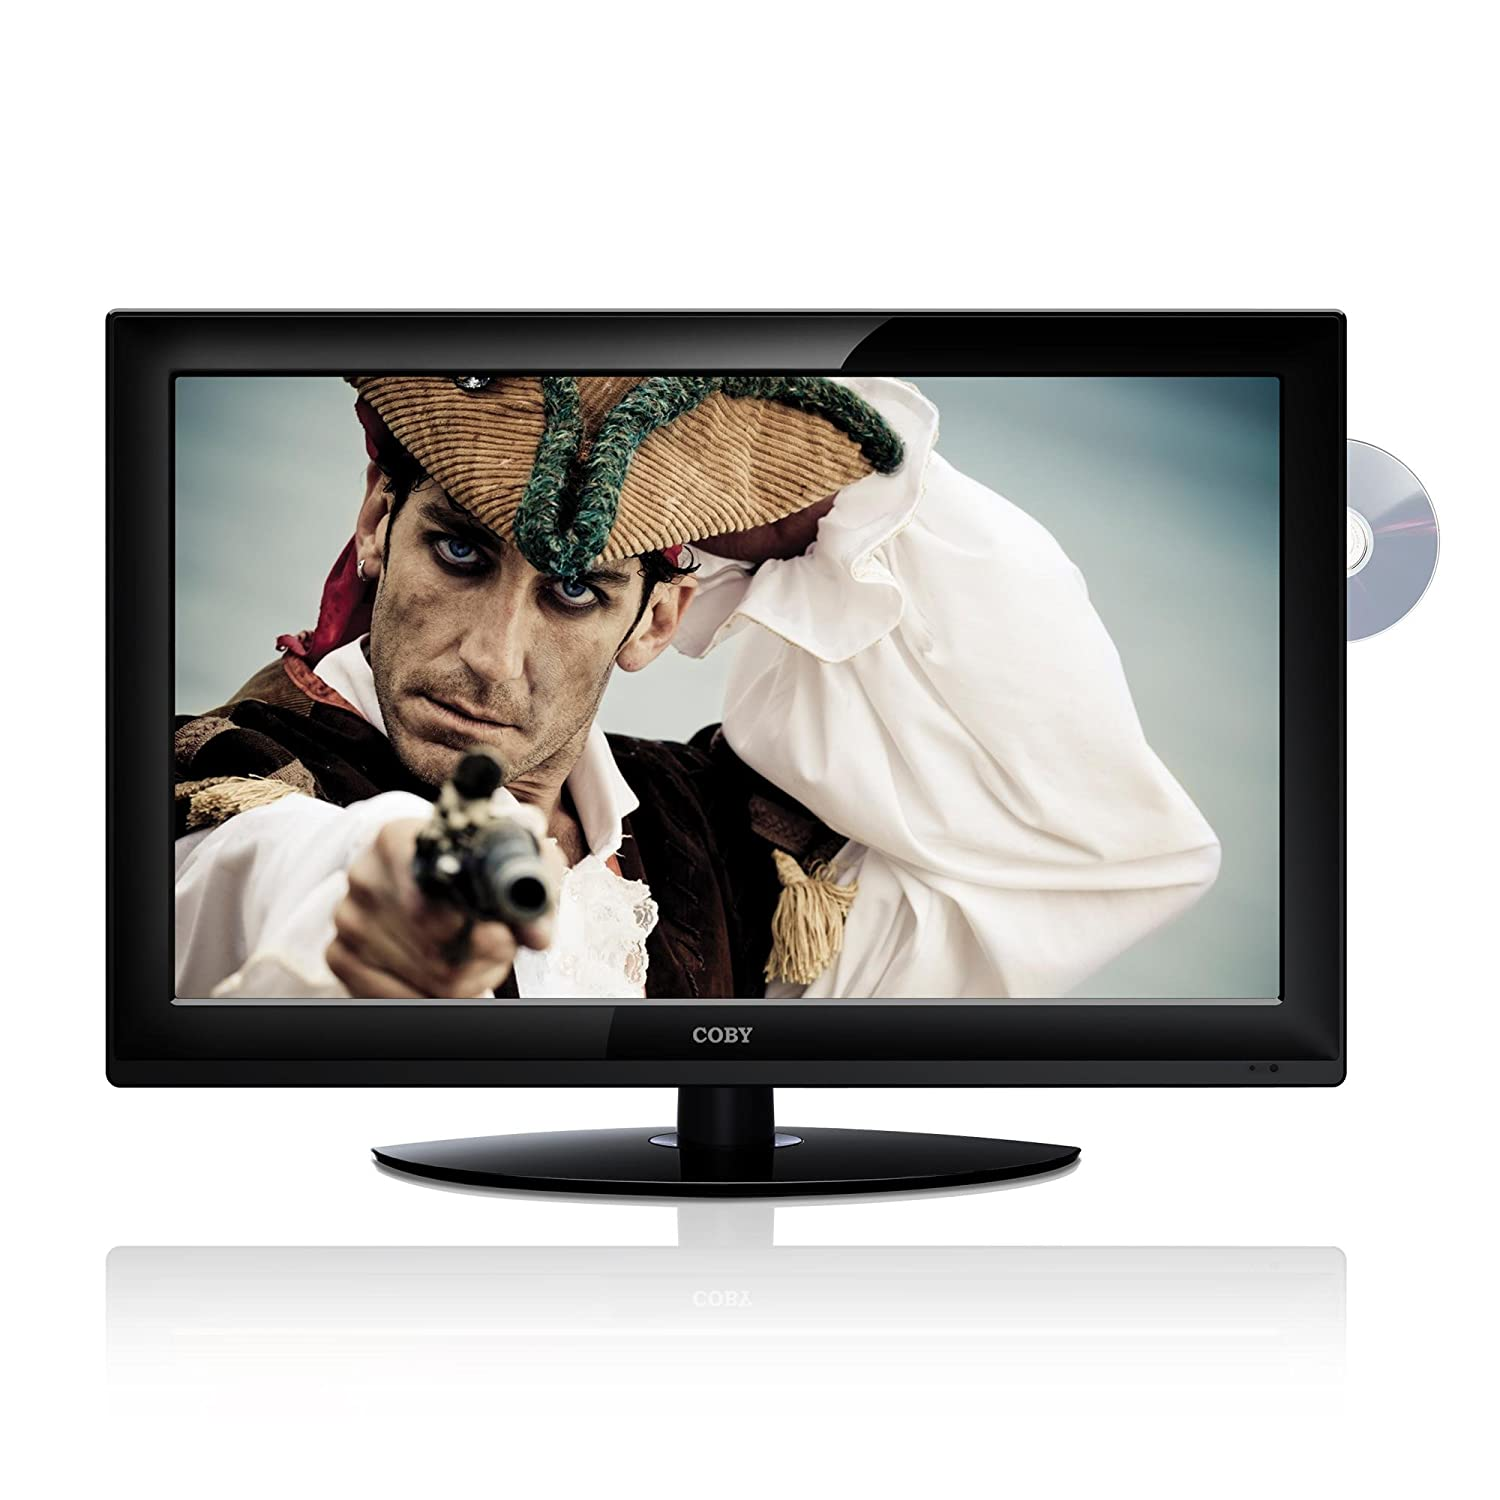 Amazon.com: Coby TFDVD3299 32-Inch 720p 60Hz Widescreen LCD HDTV/Monitor  with DVD Player (Black): Electronics